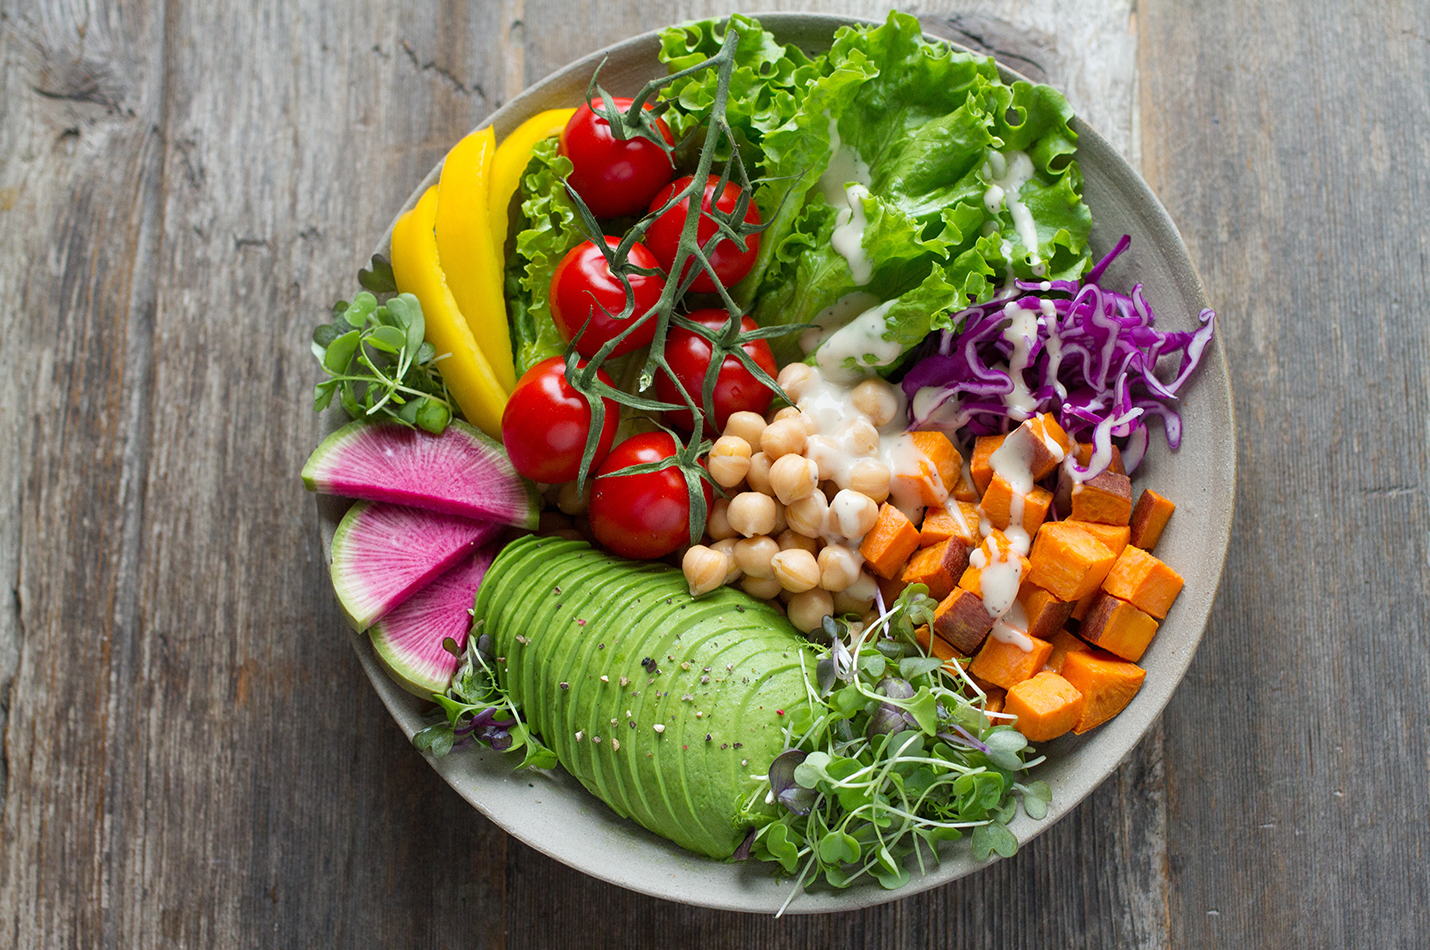 plant-based diet image of salad with chickpeas and avocado